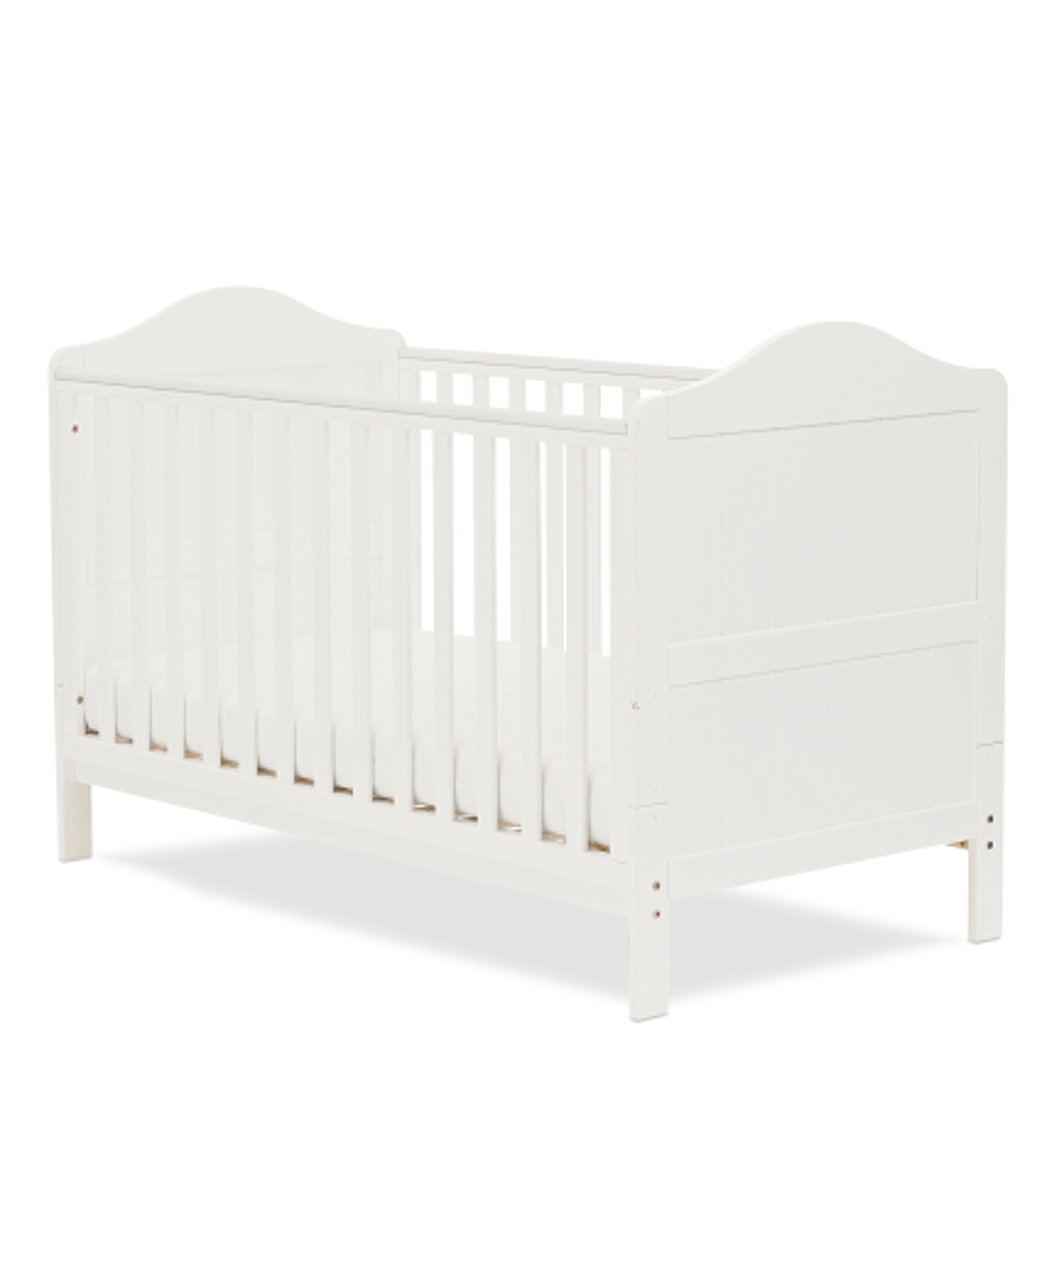 mothercare darlington cot bed instructions